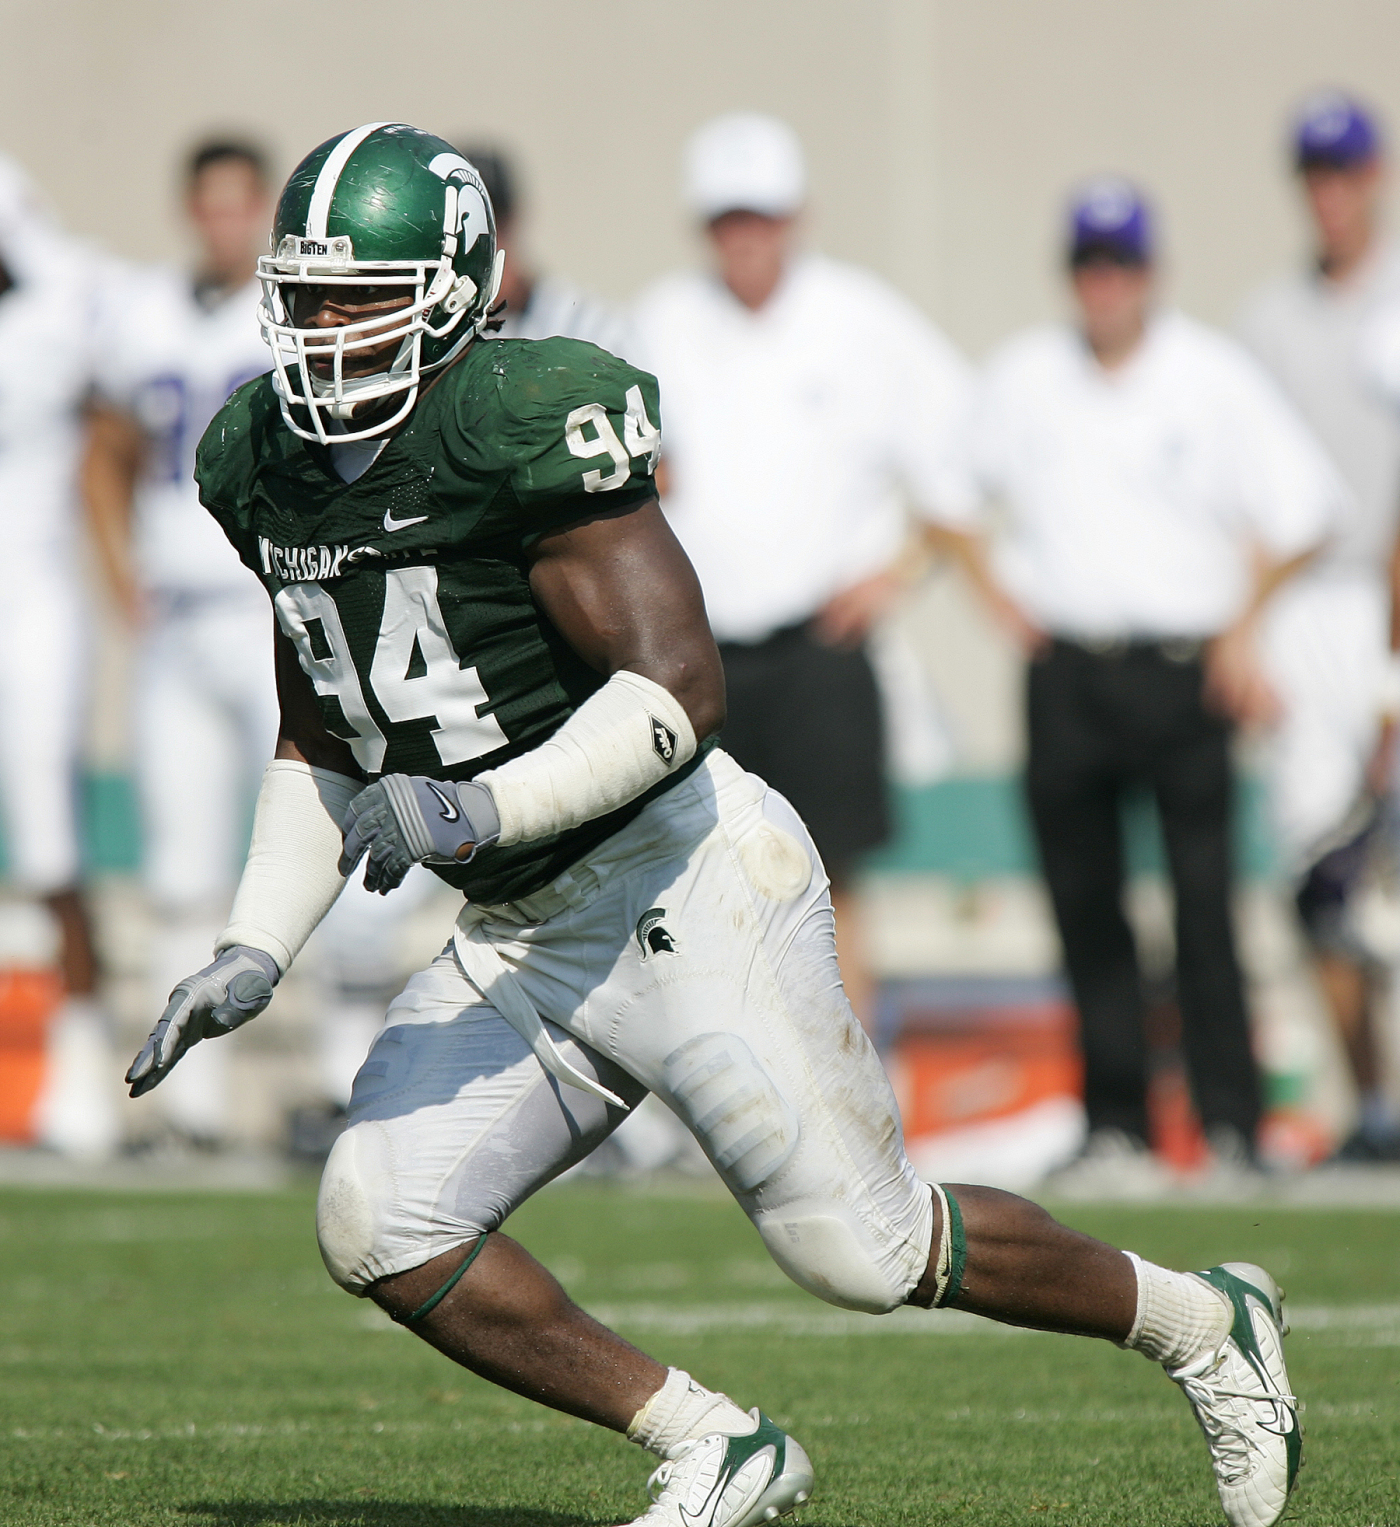 Spartan Football Faces Another Big Ten Road Test Saturday At